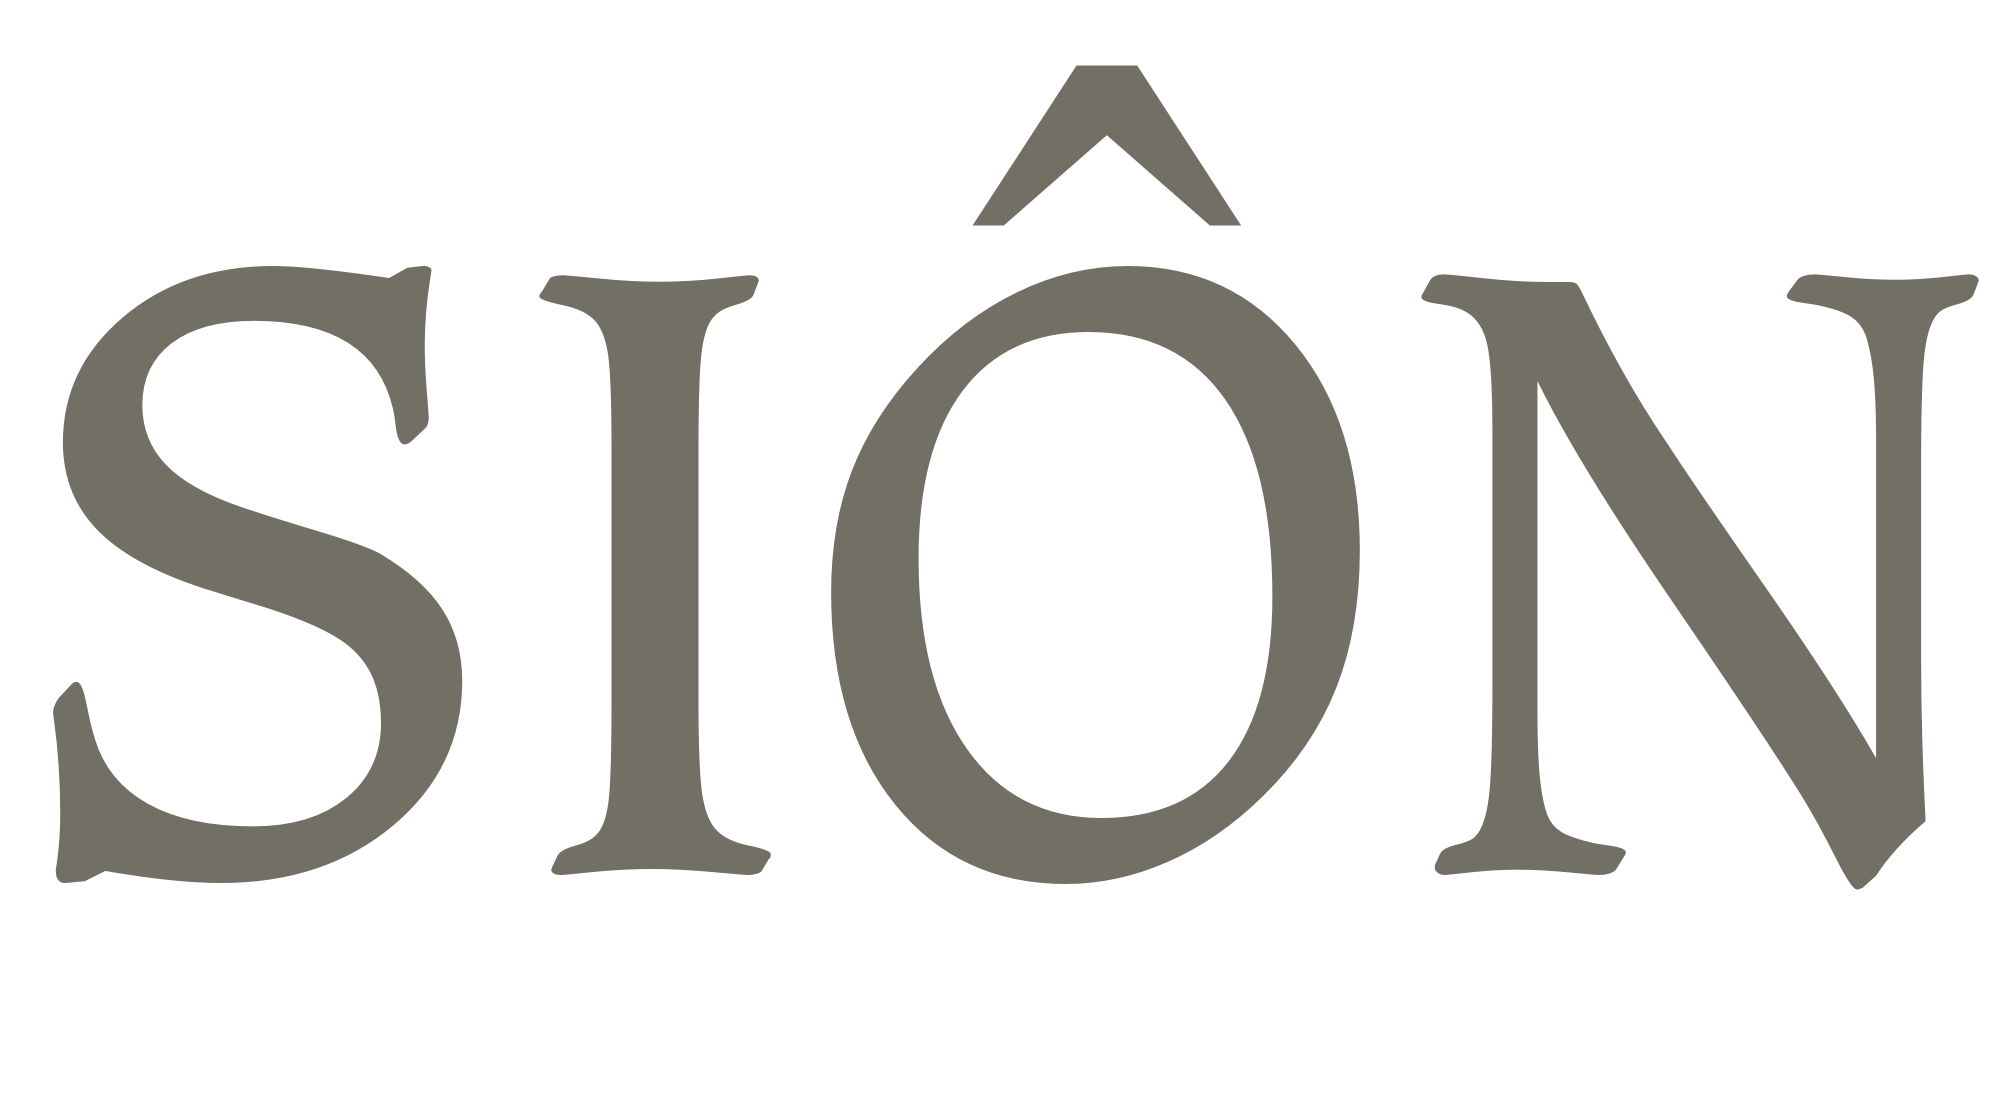 SIÔN - Name's Meaning of SIÔN (SIoN)